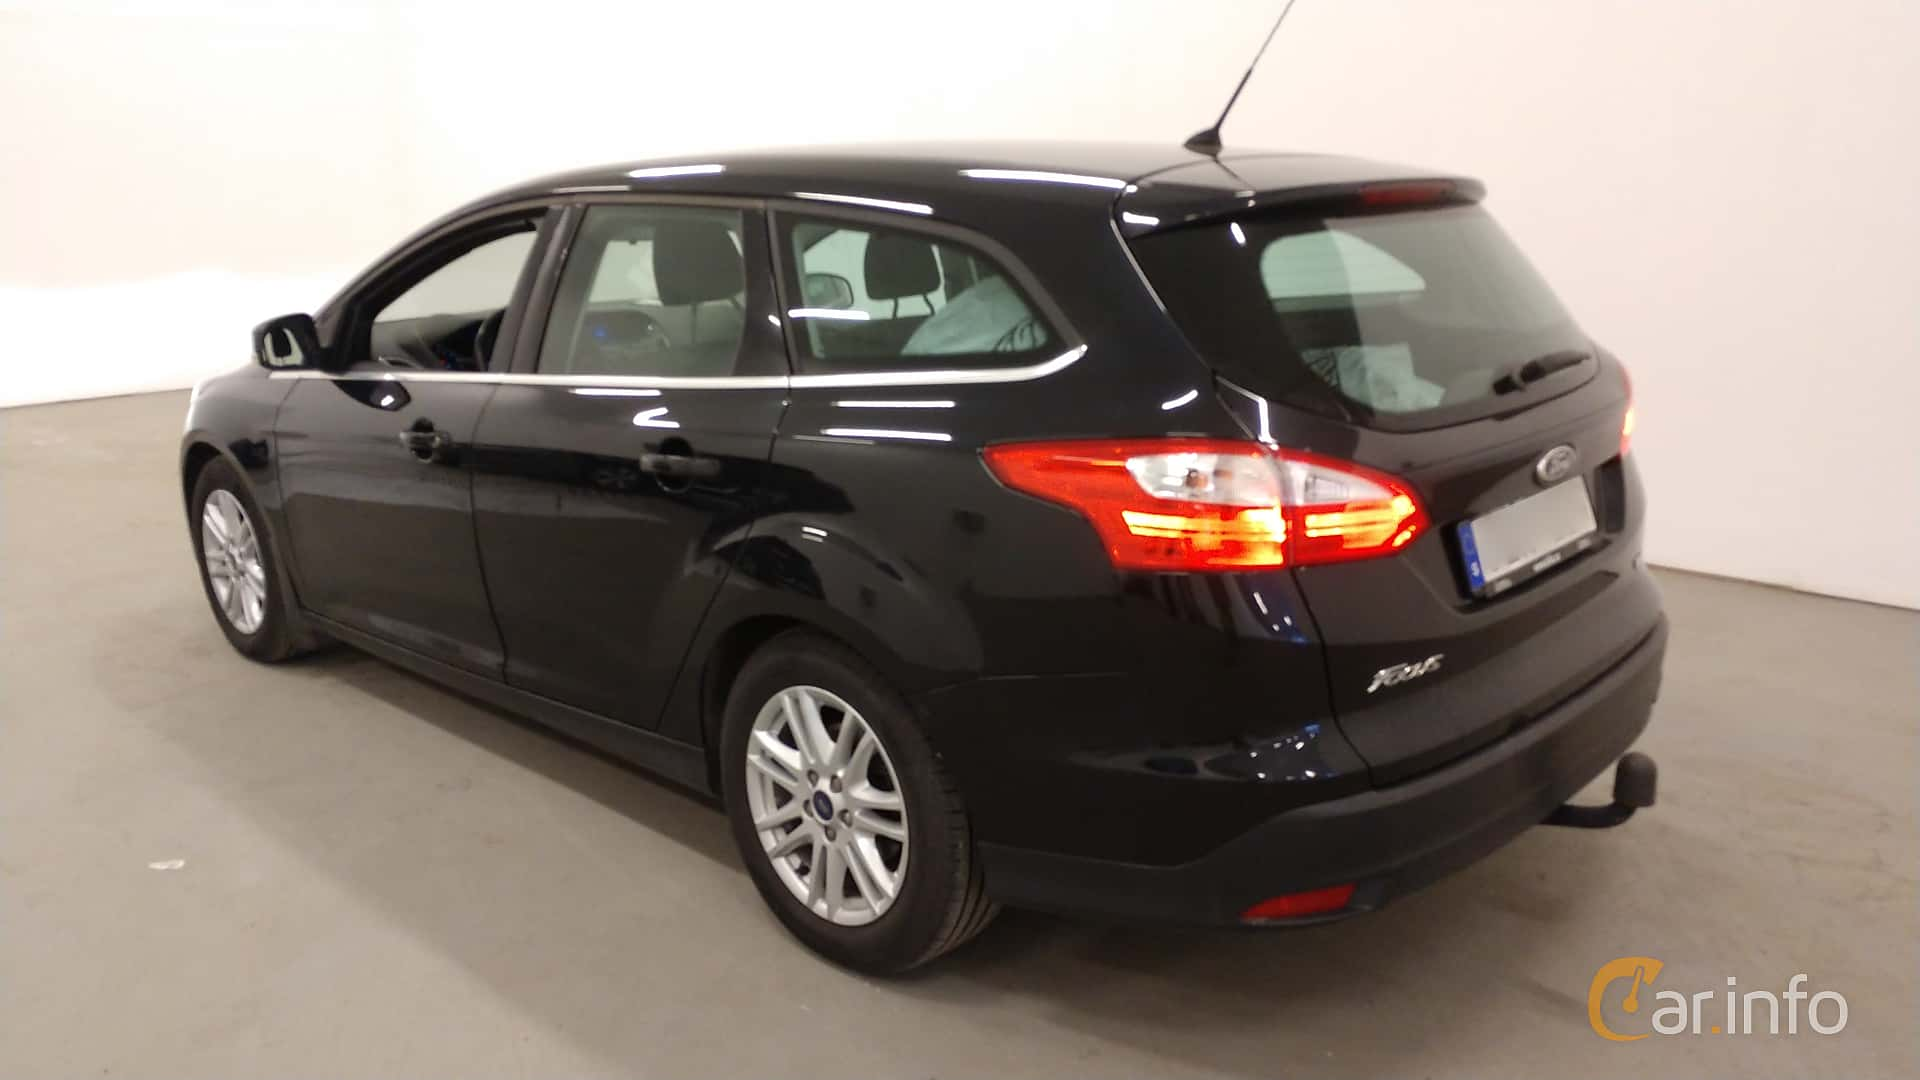 Ford Focus Combi 1.0 EcoBoost Manual, 125hp, 2013